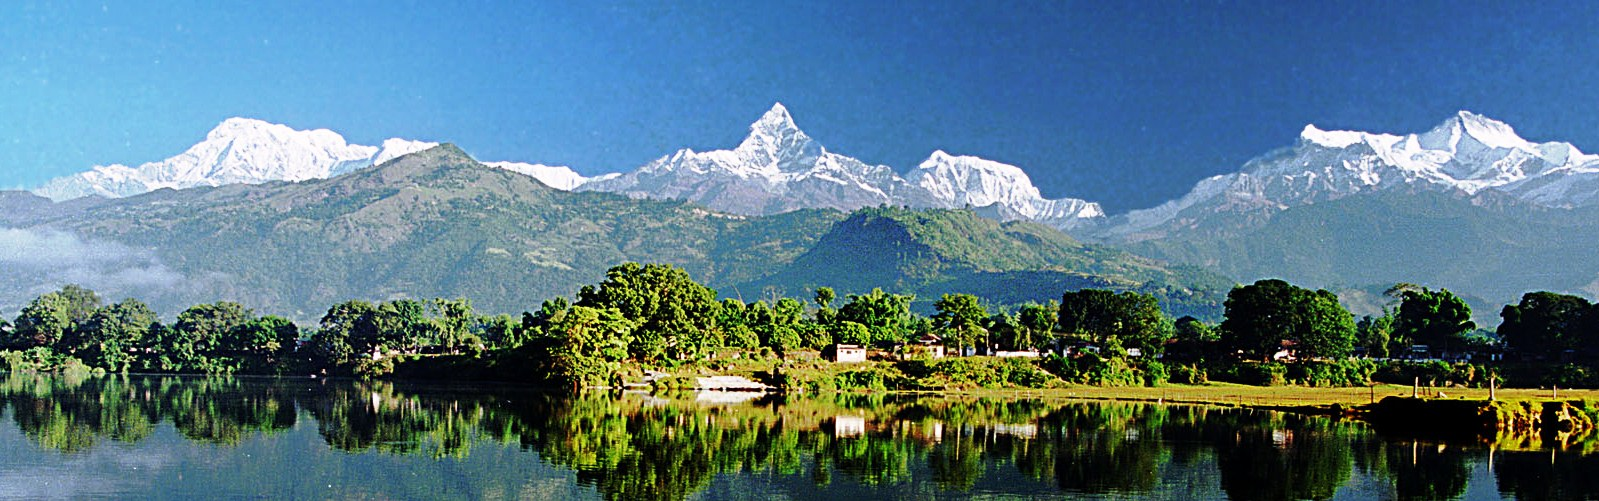 Machhapuchre Shining with Fewa Lake